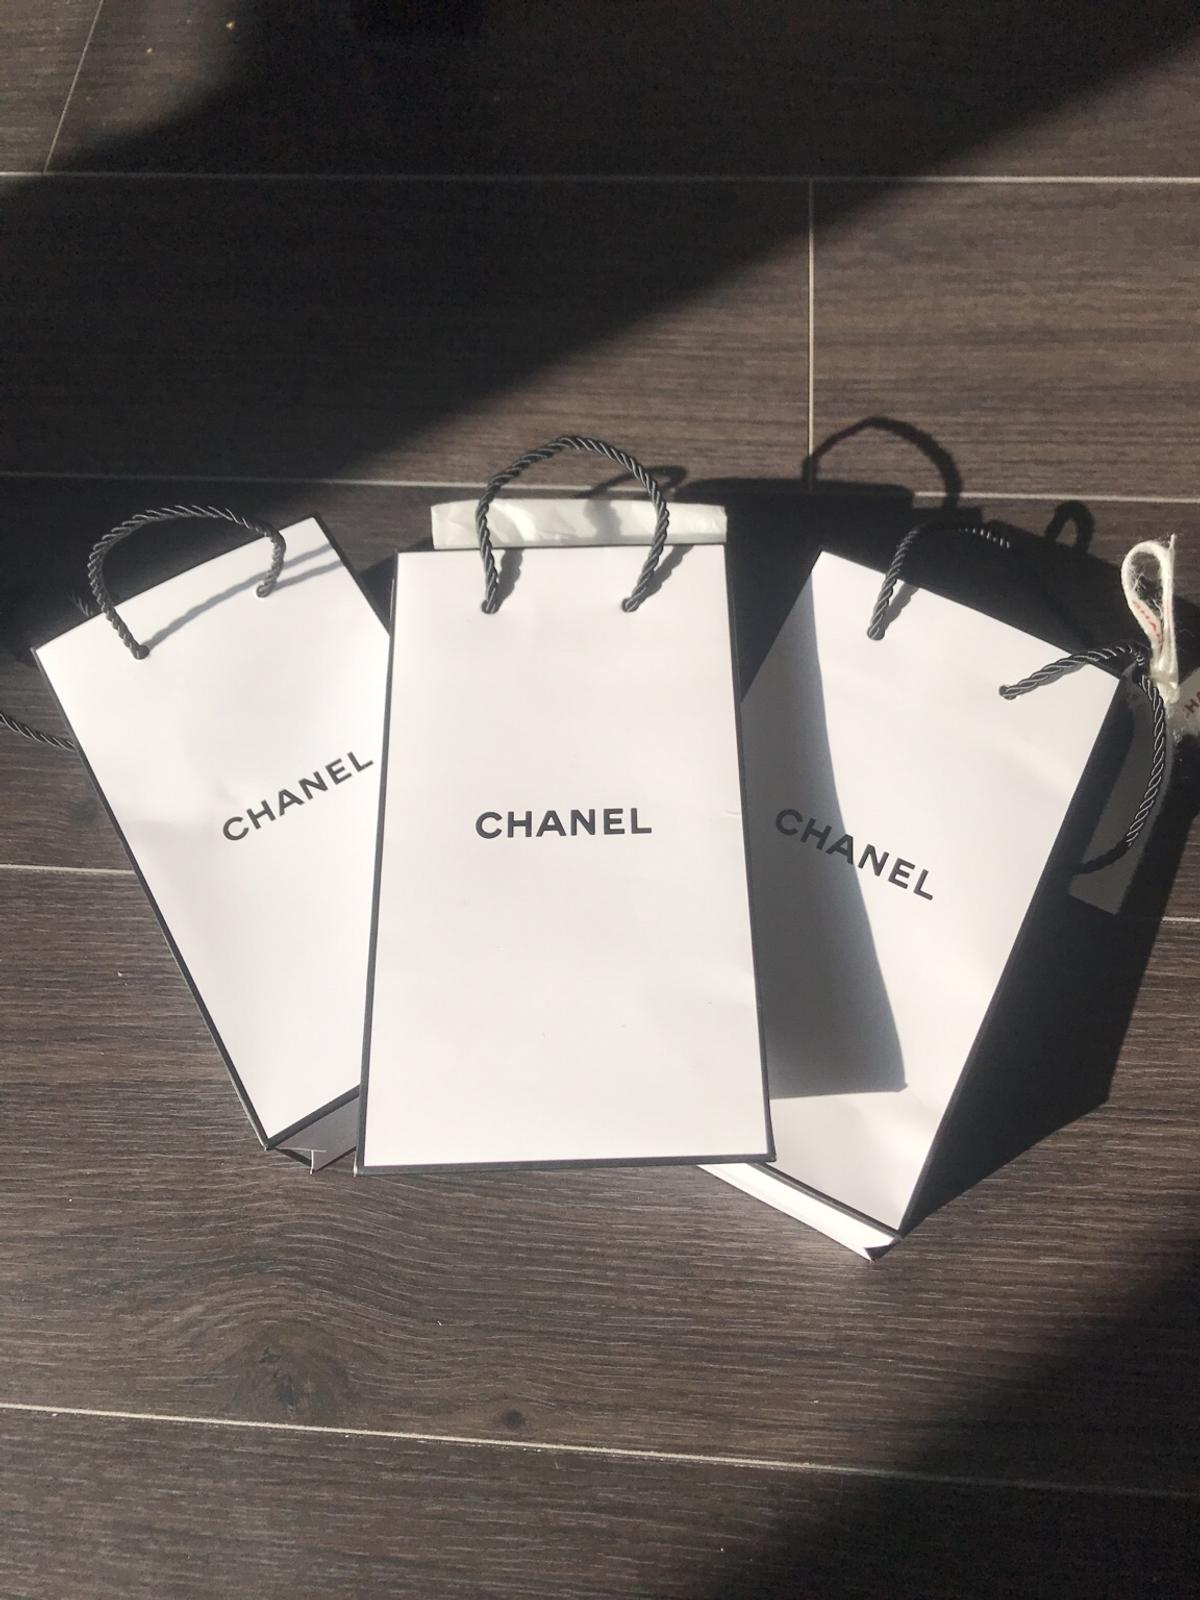 f5031b160b4cd9 Chanel Bags in CO1 Colchester for £2.50 for sale - Shpock